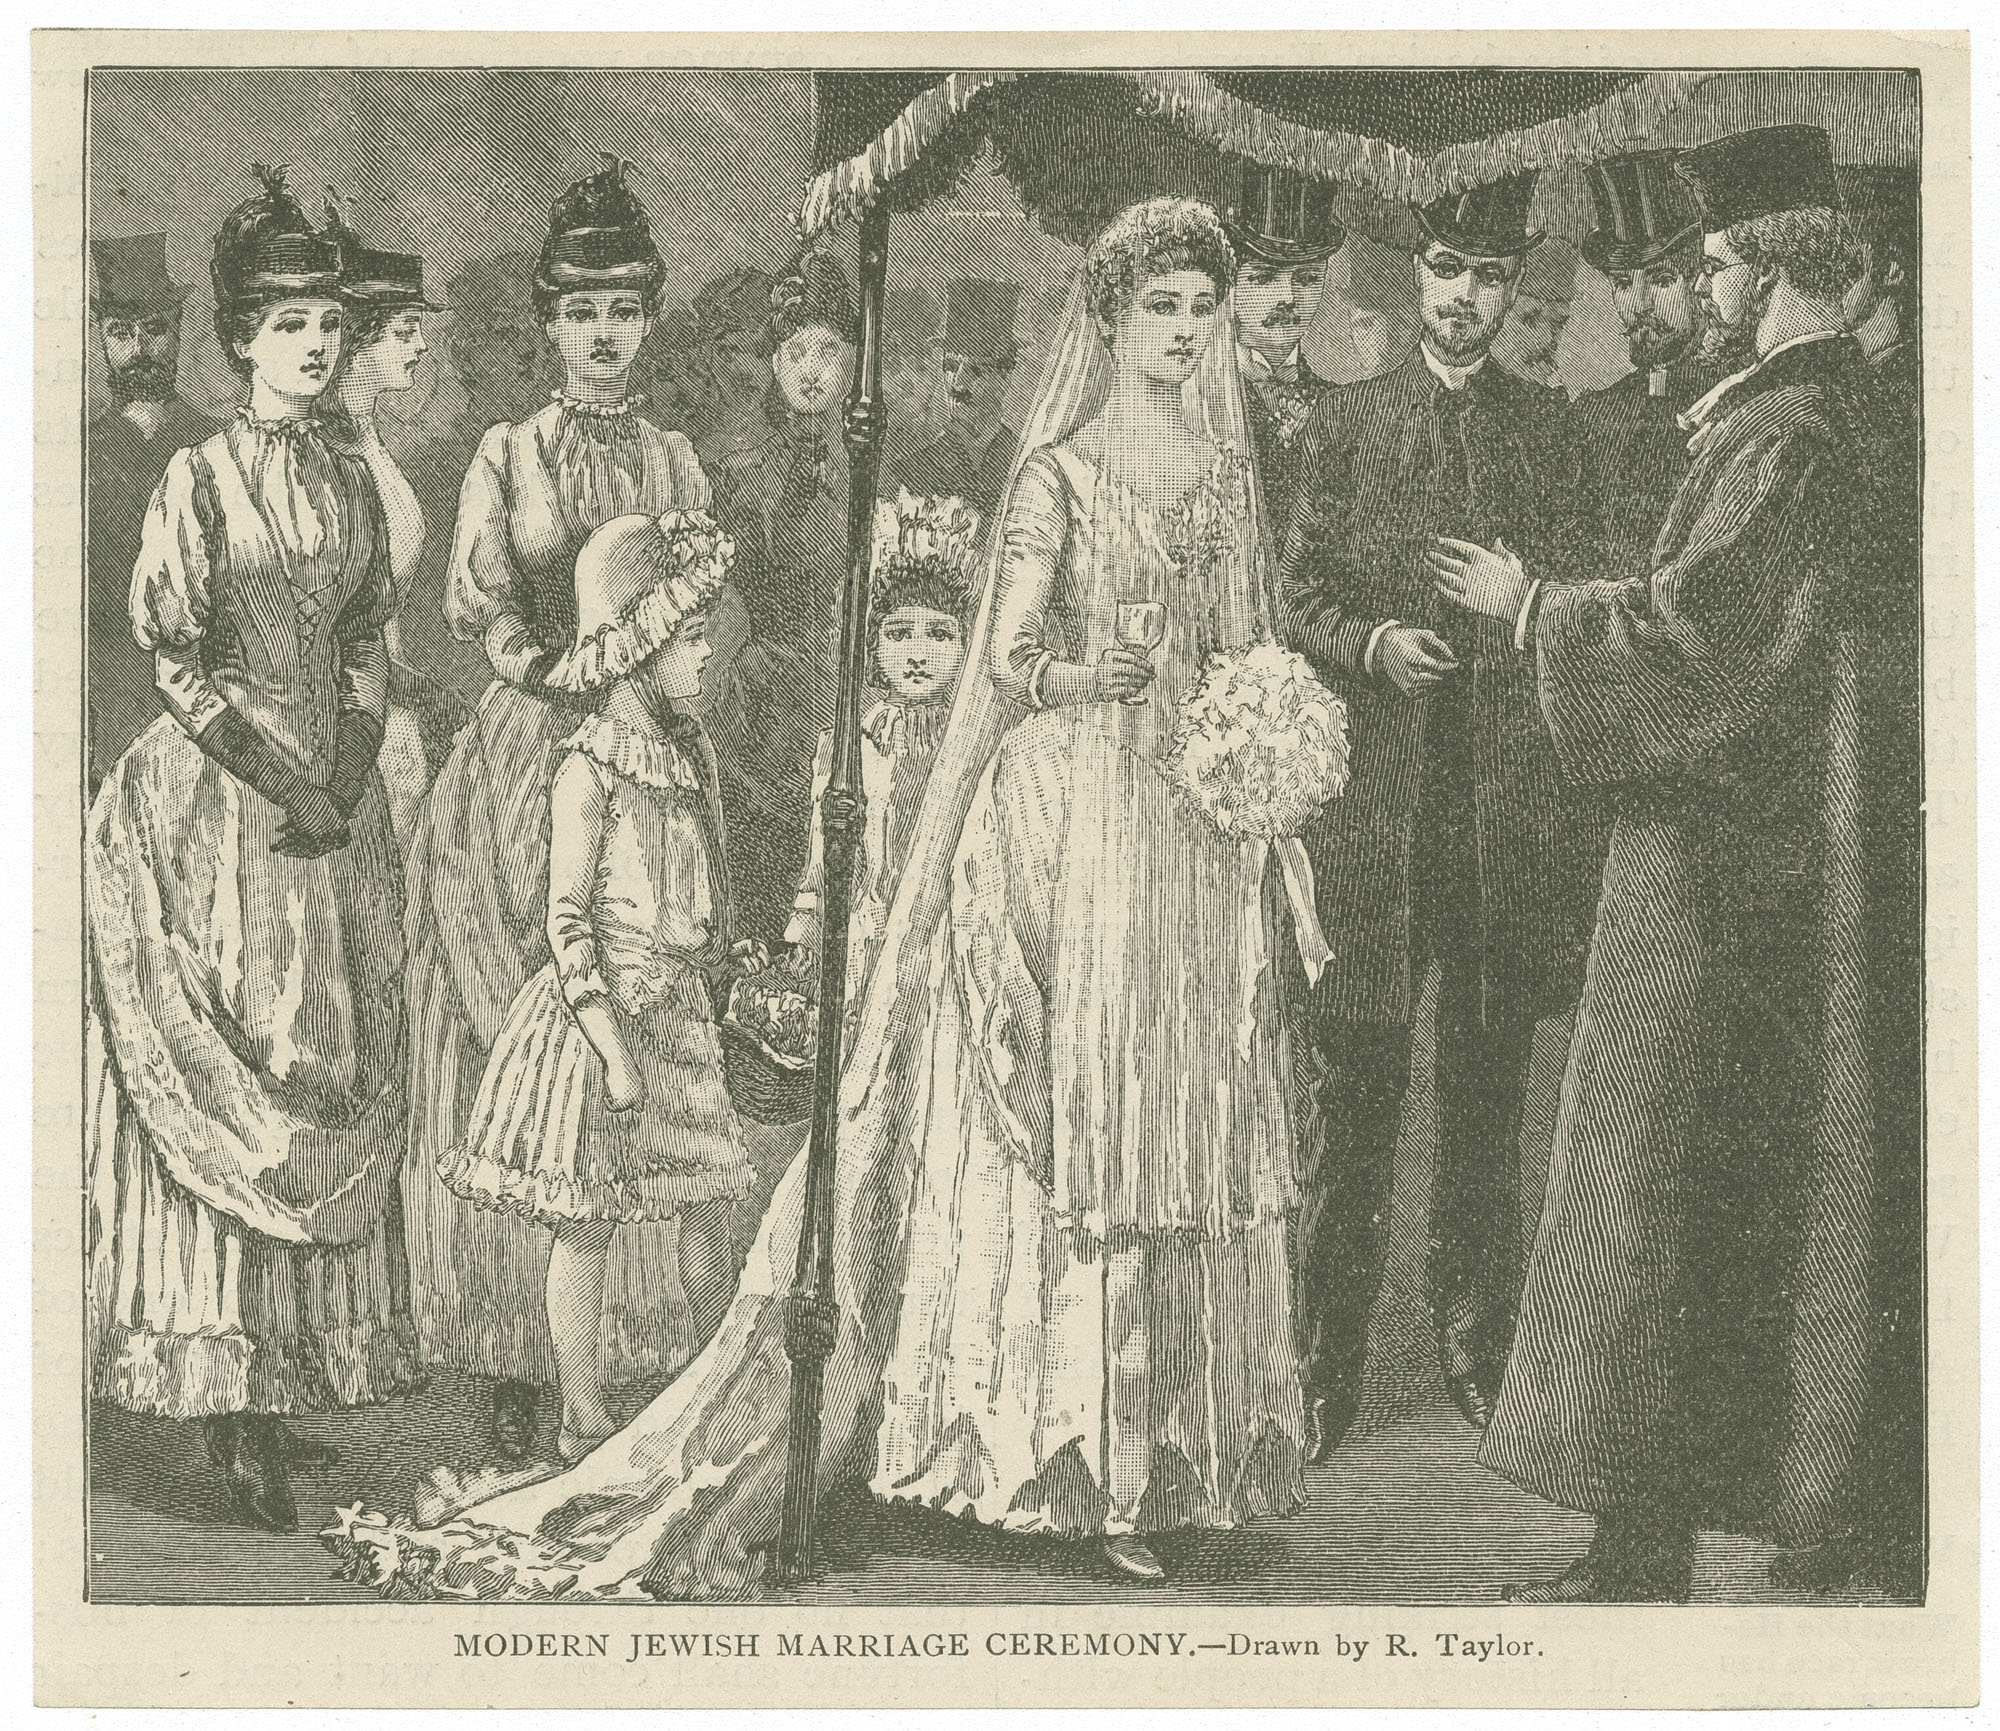 Modern Jewish marriage ceremony